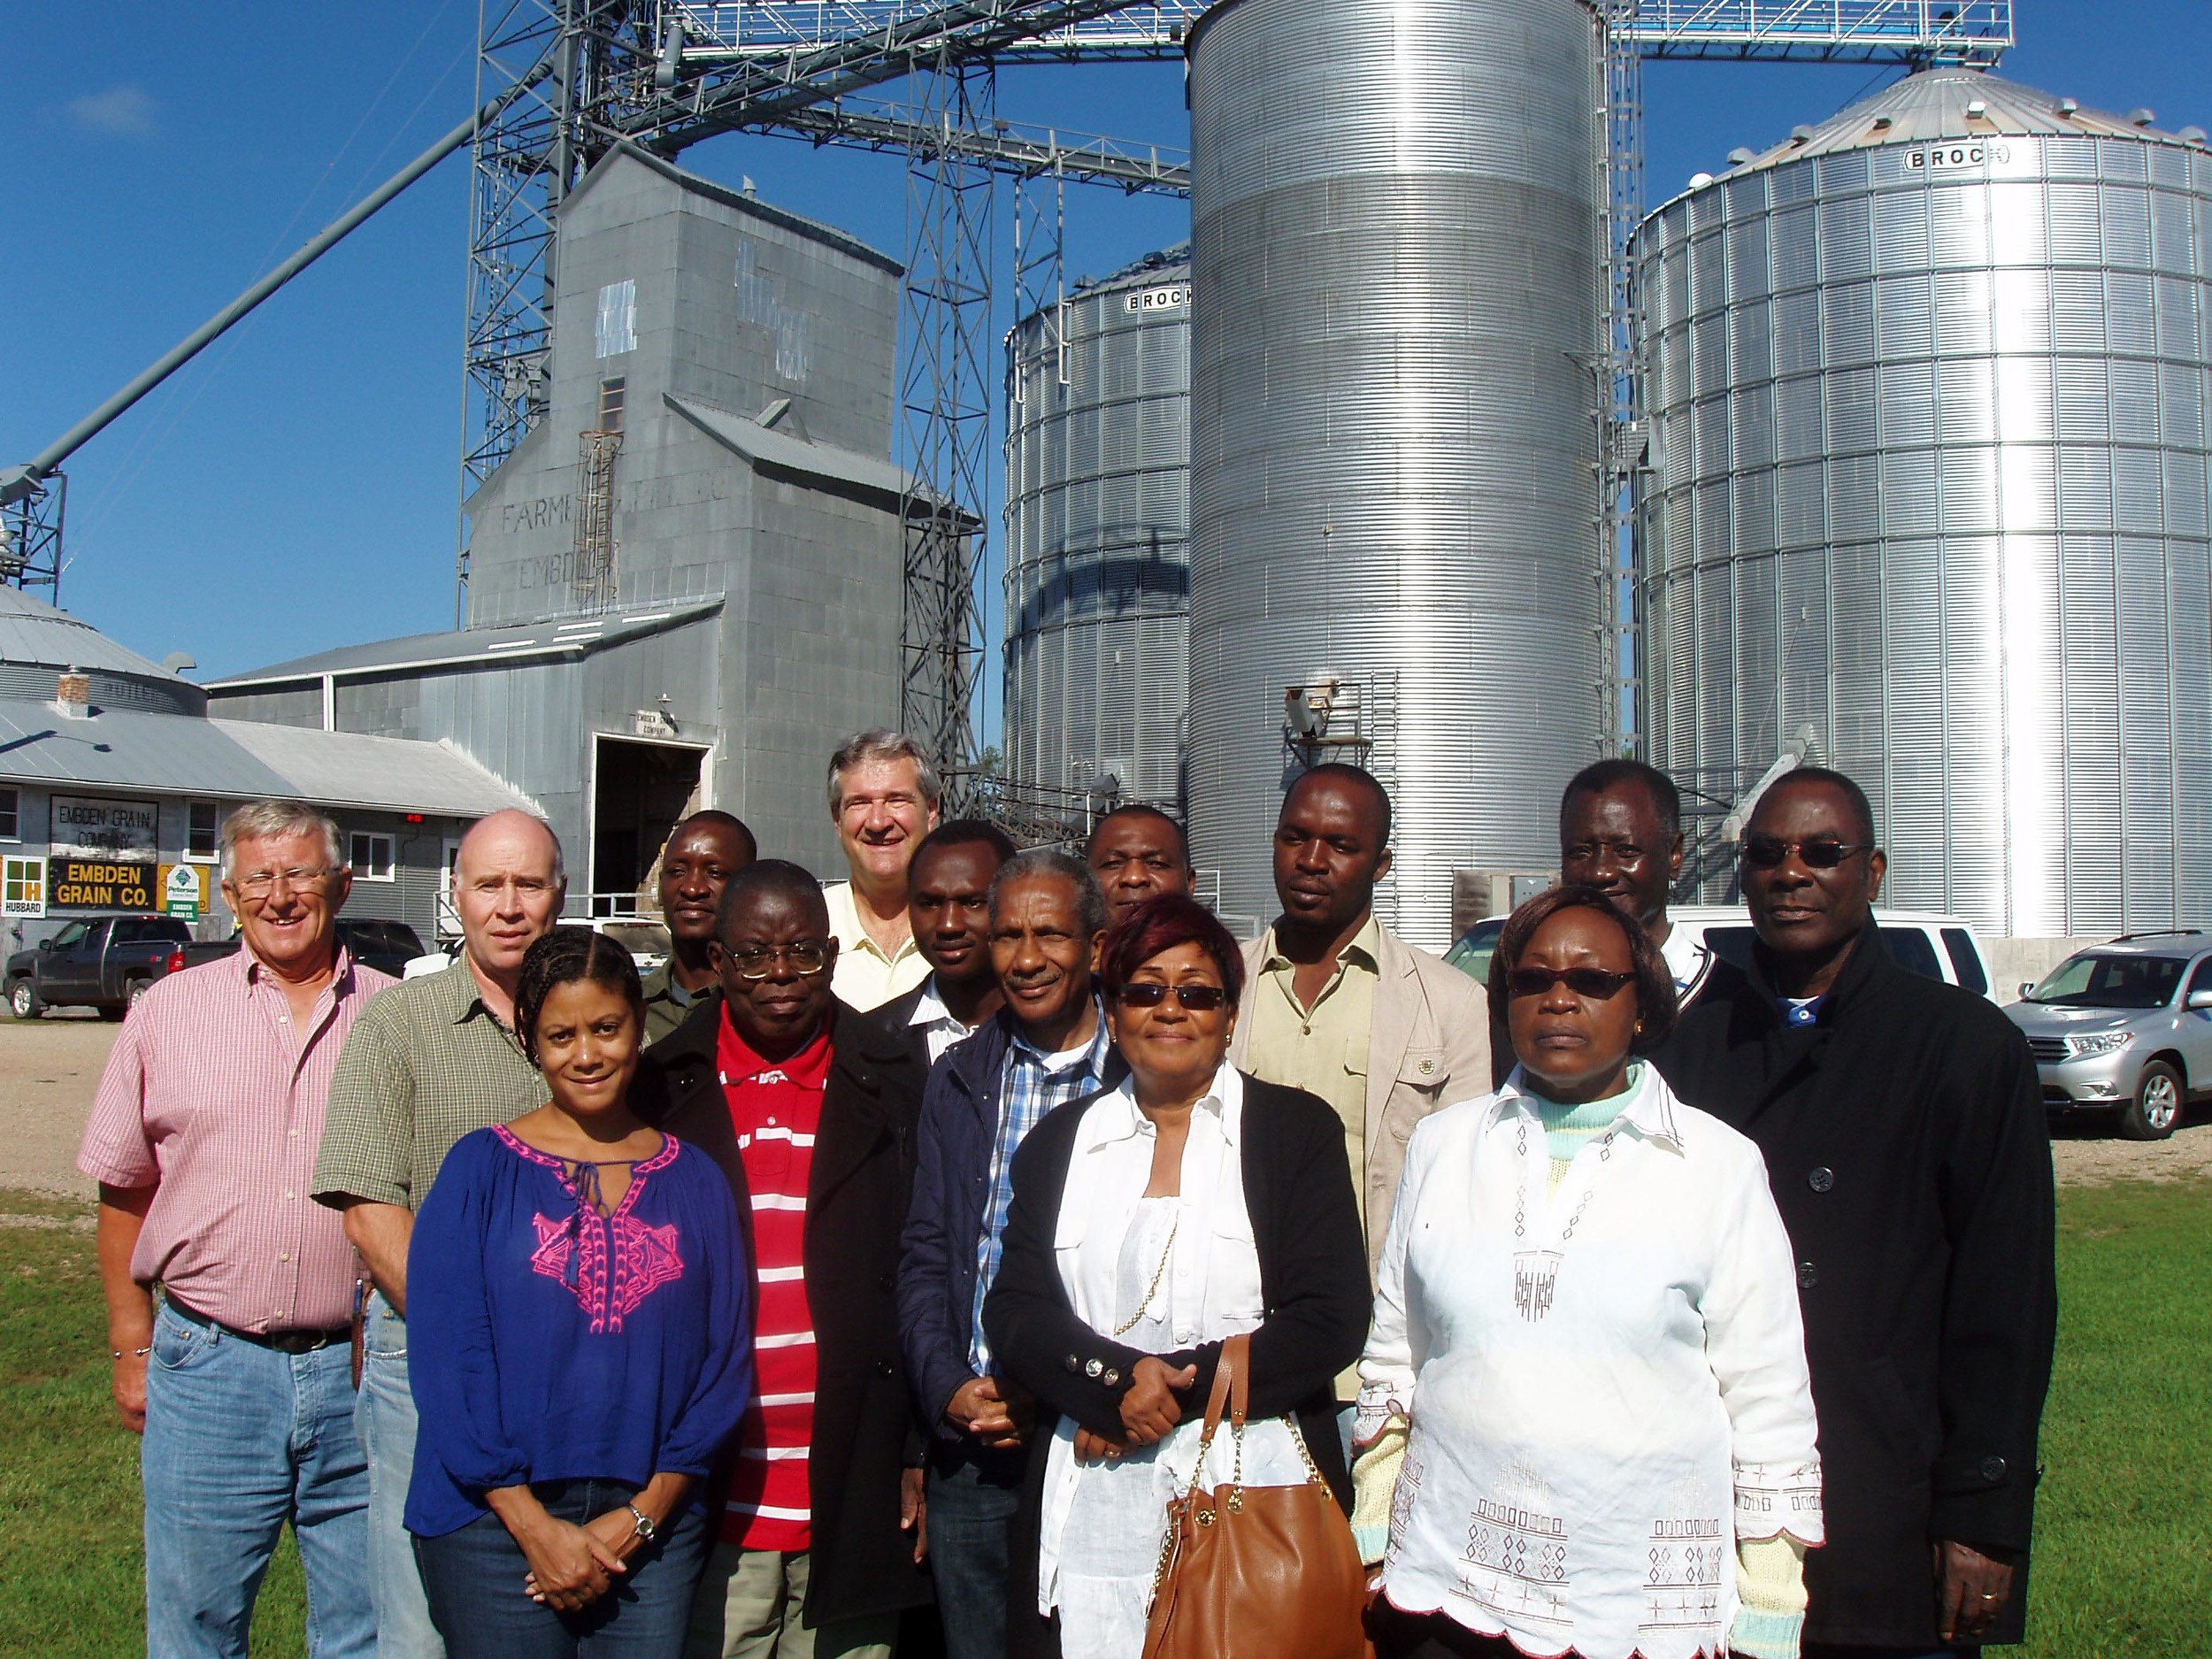 2014 Baking with soy SC at Embden Grain Company.jpg